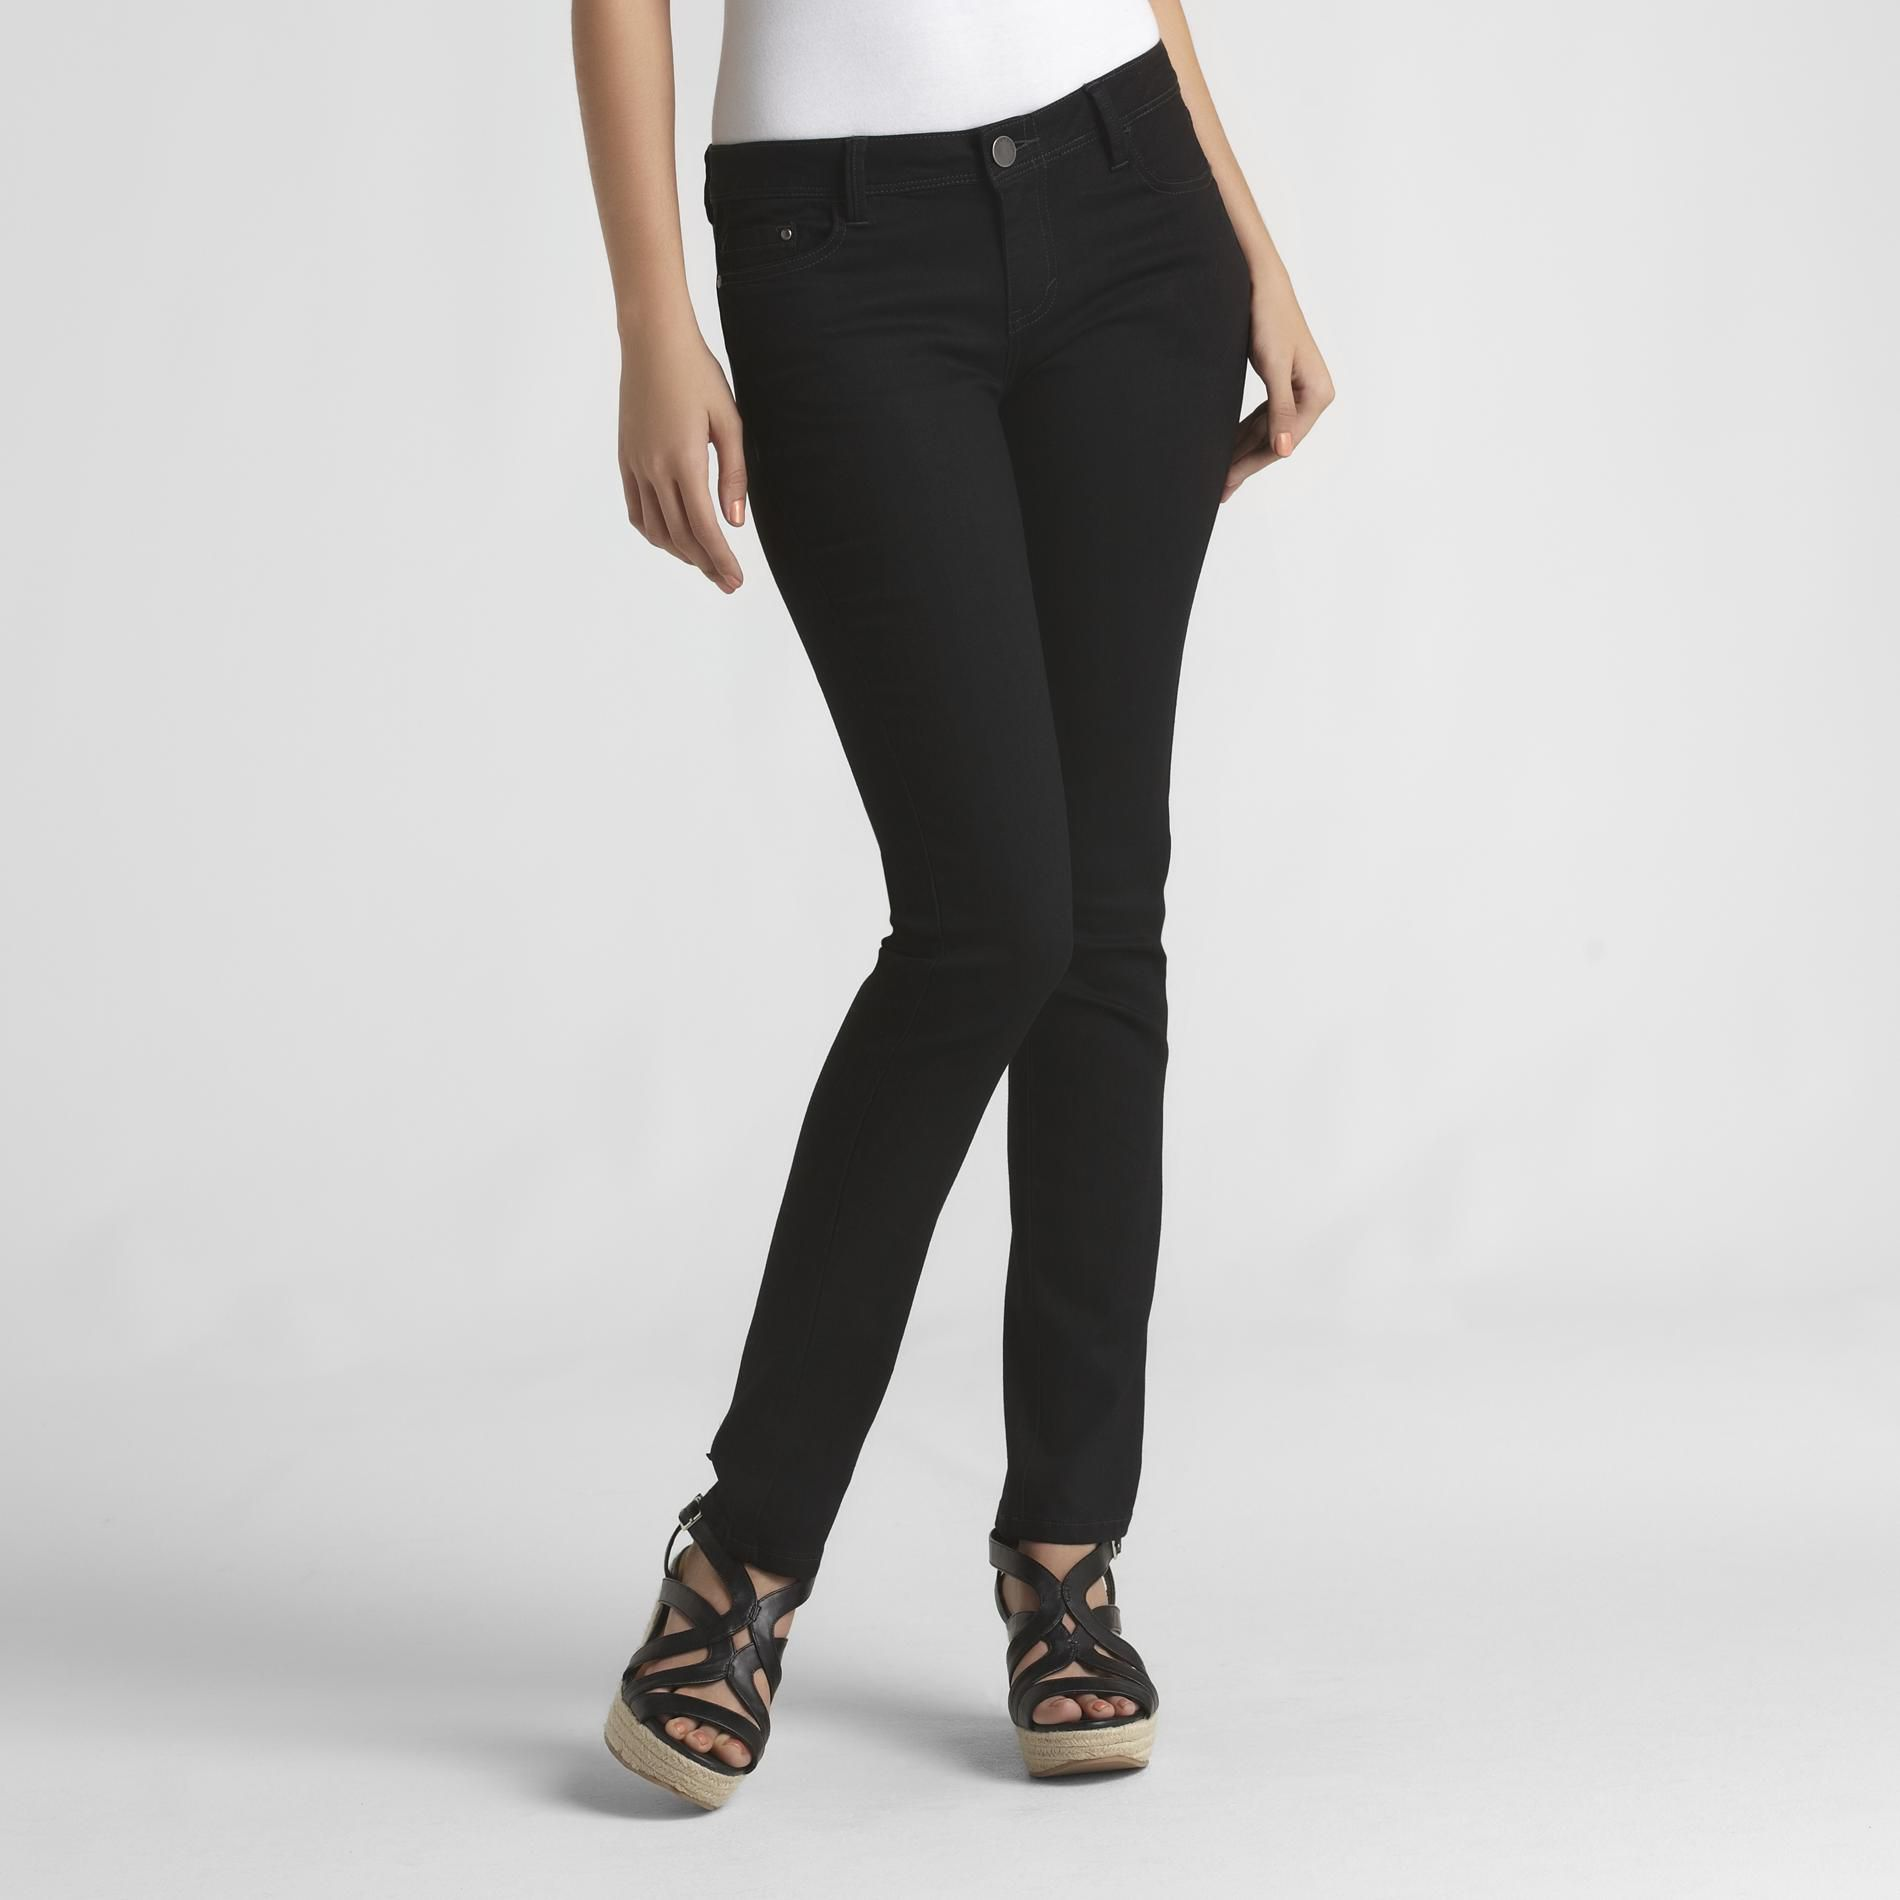 Women's Super Skinny Jeans